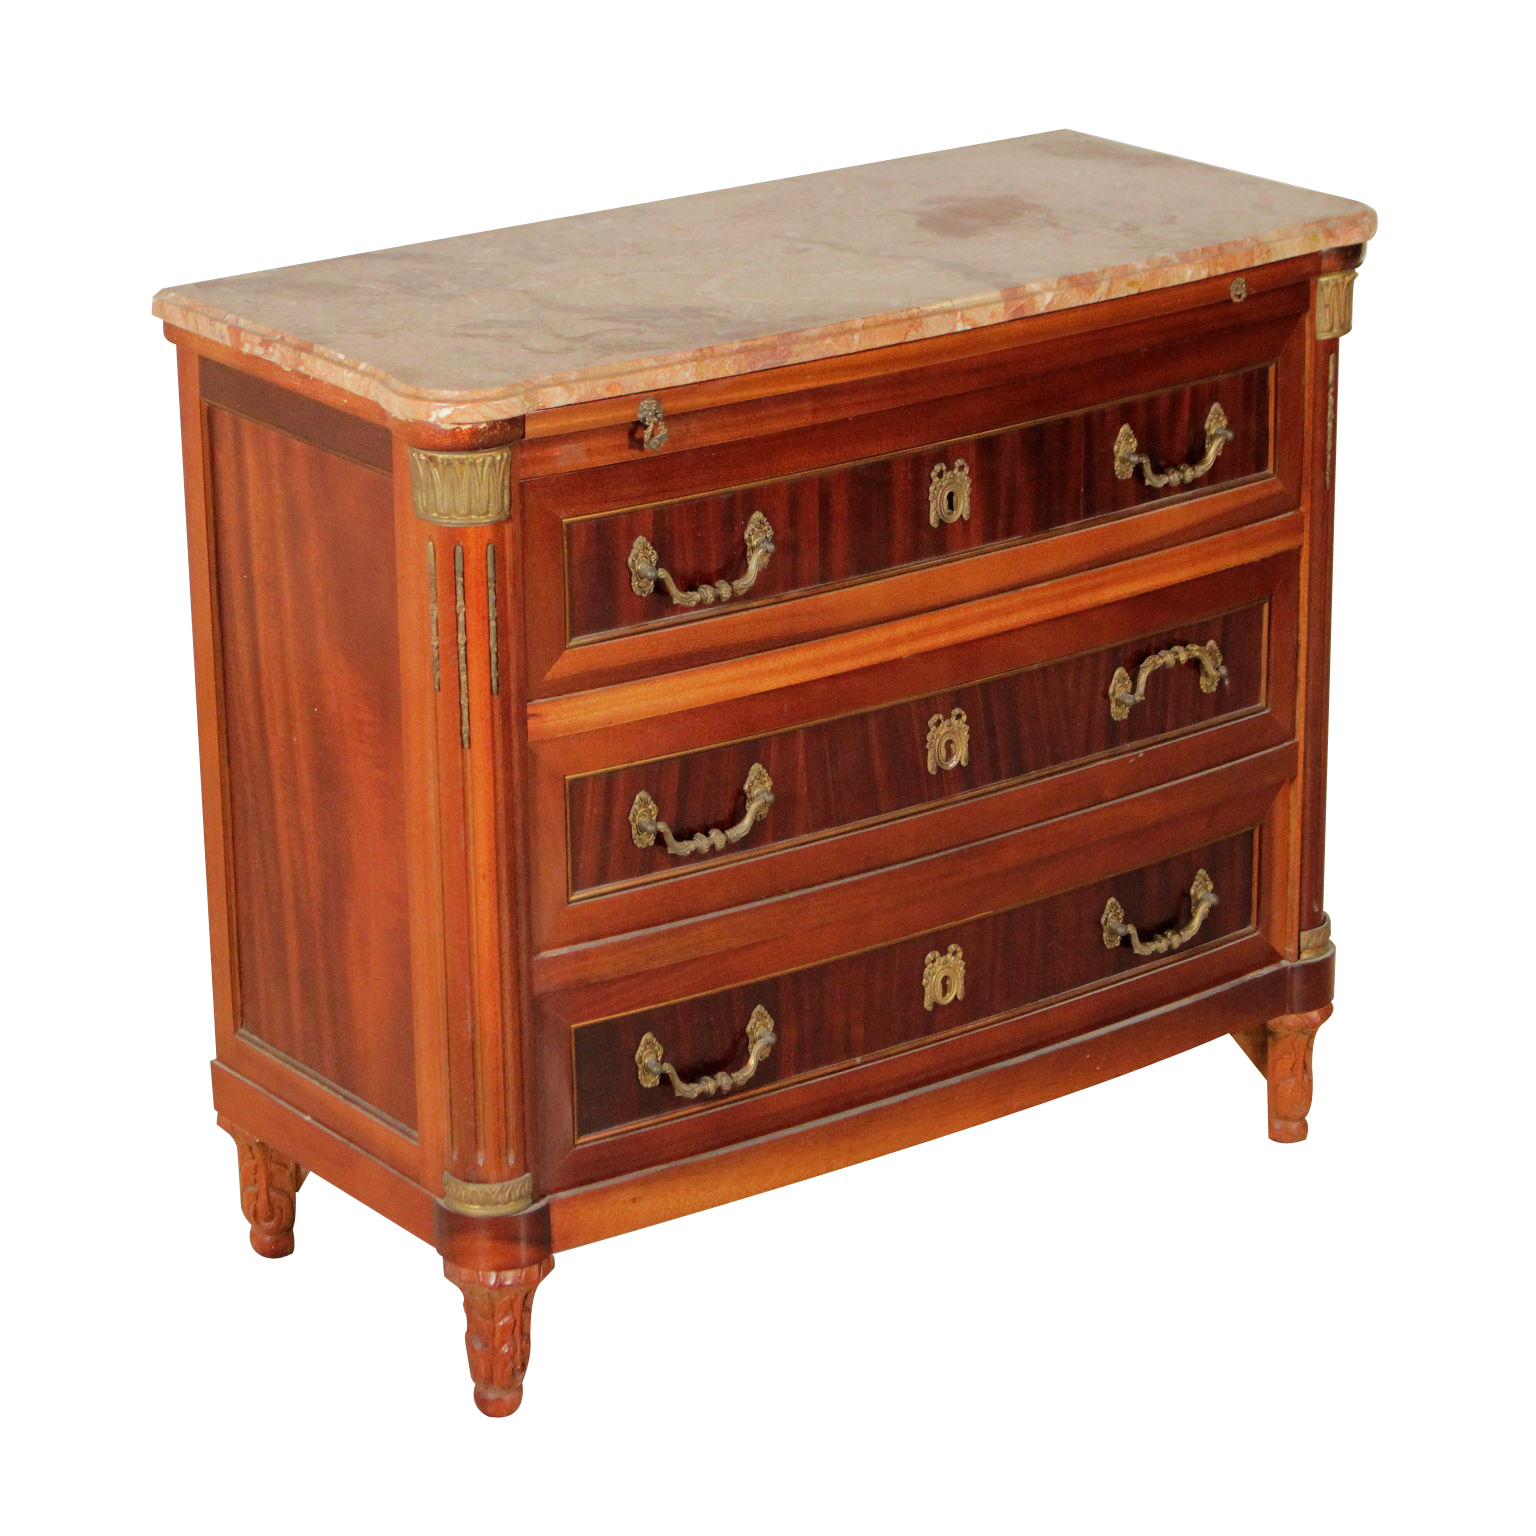 commode de style napolon iii